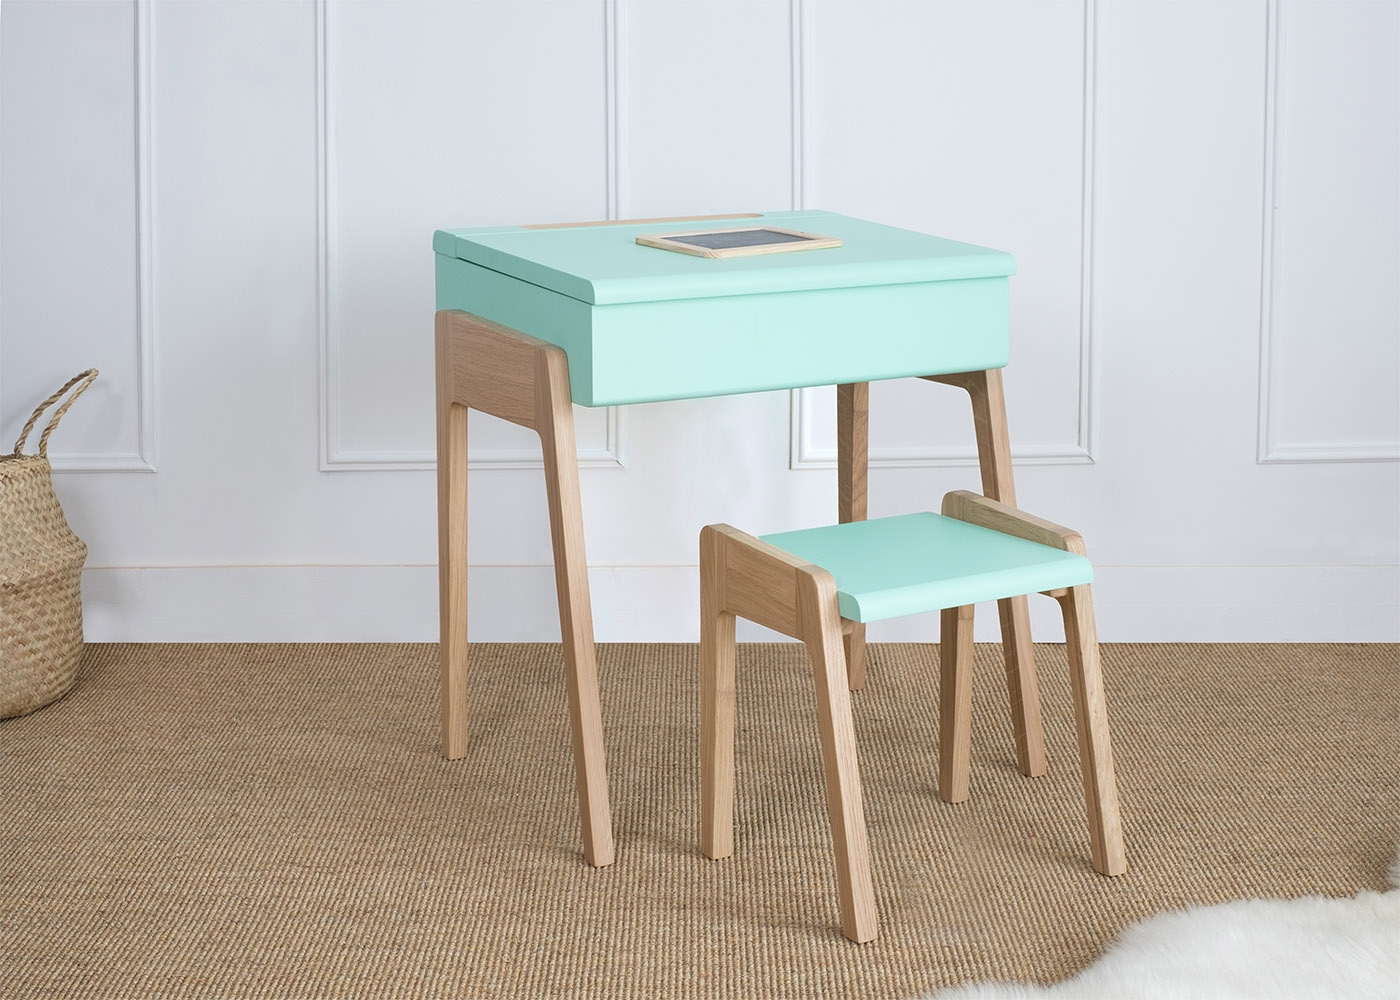 bureau design enfant bureau design en bois massif marley with bureau design enfant affordable. Black Bedroom Furniture Sets. Home Design Ideas